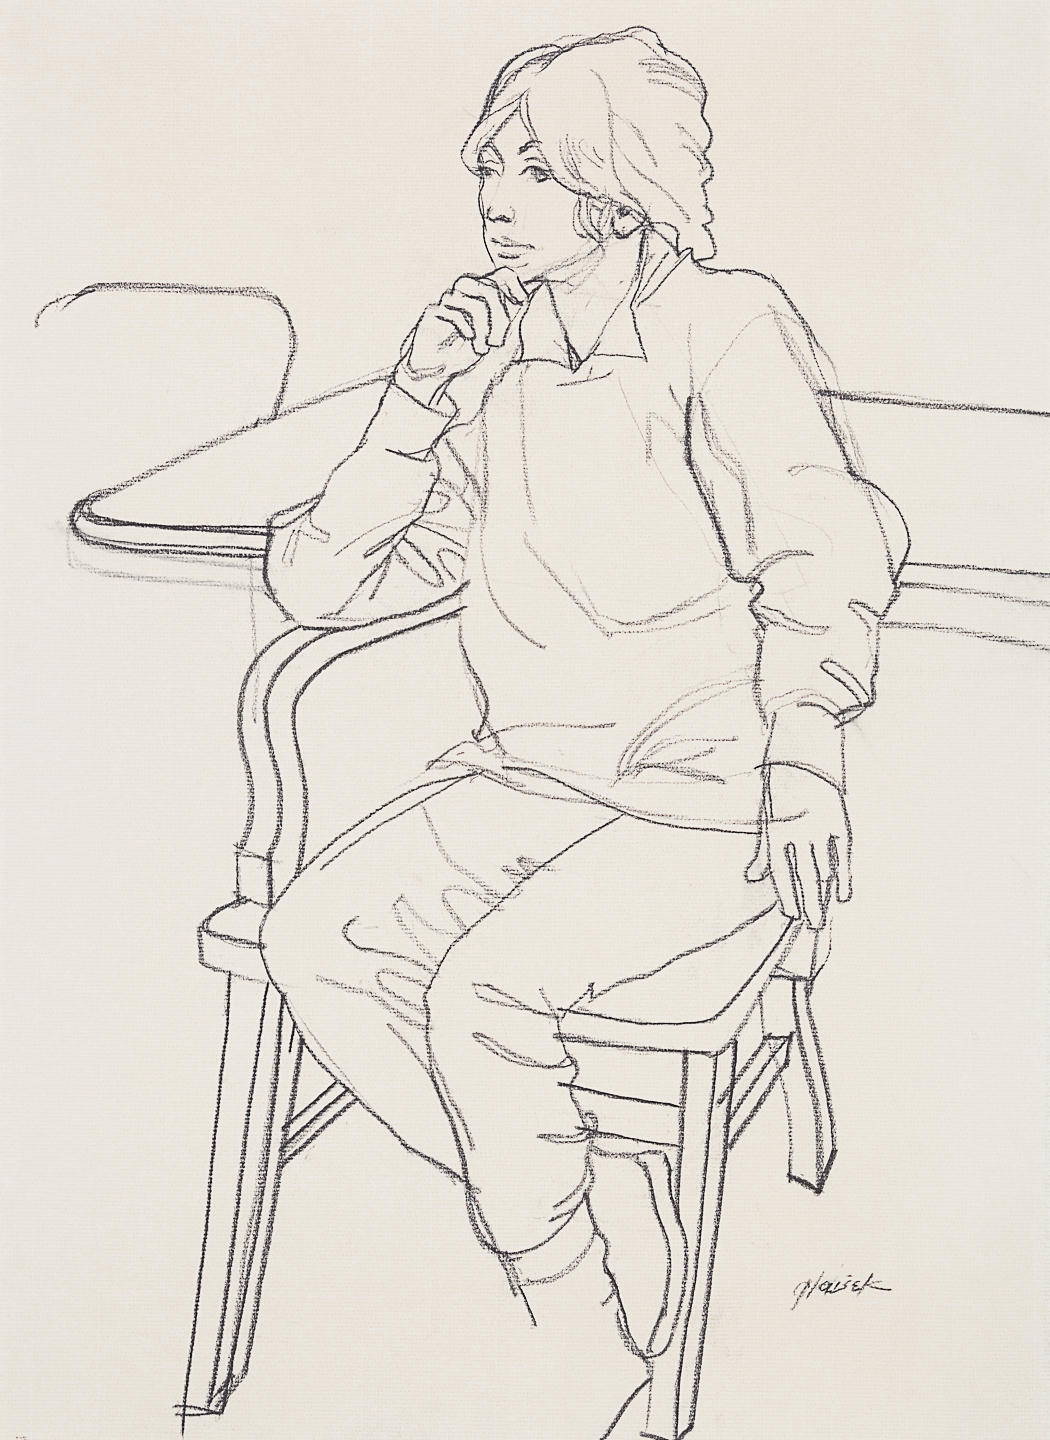 54  Woman Seated at Table with Hand to Chin (Contour)